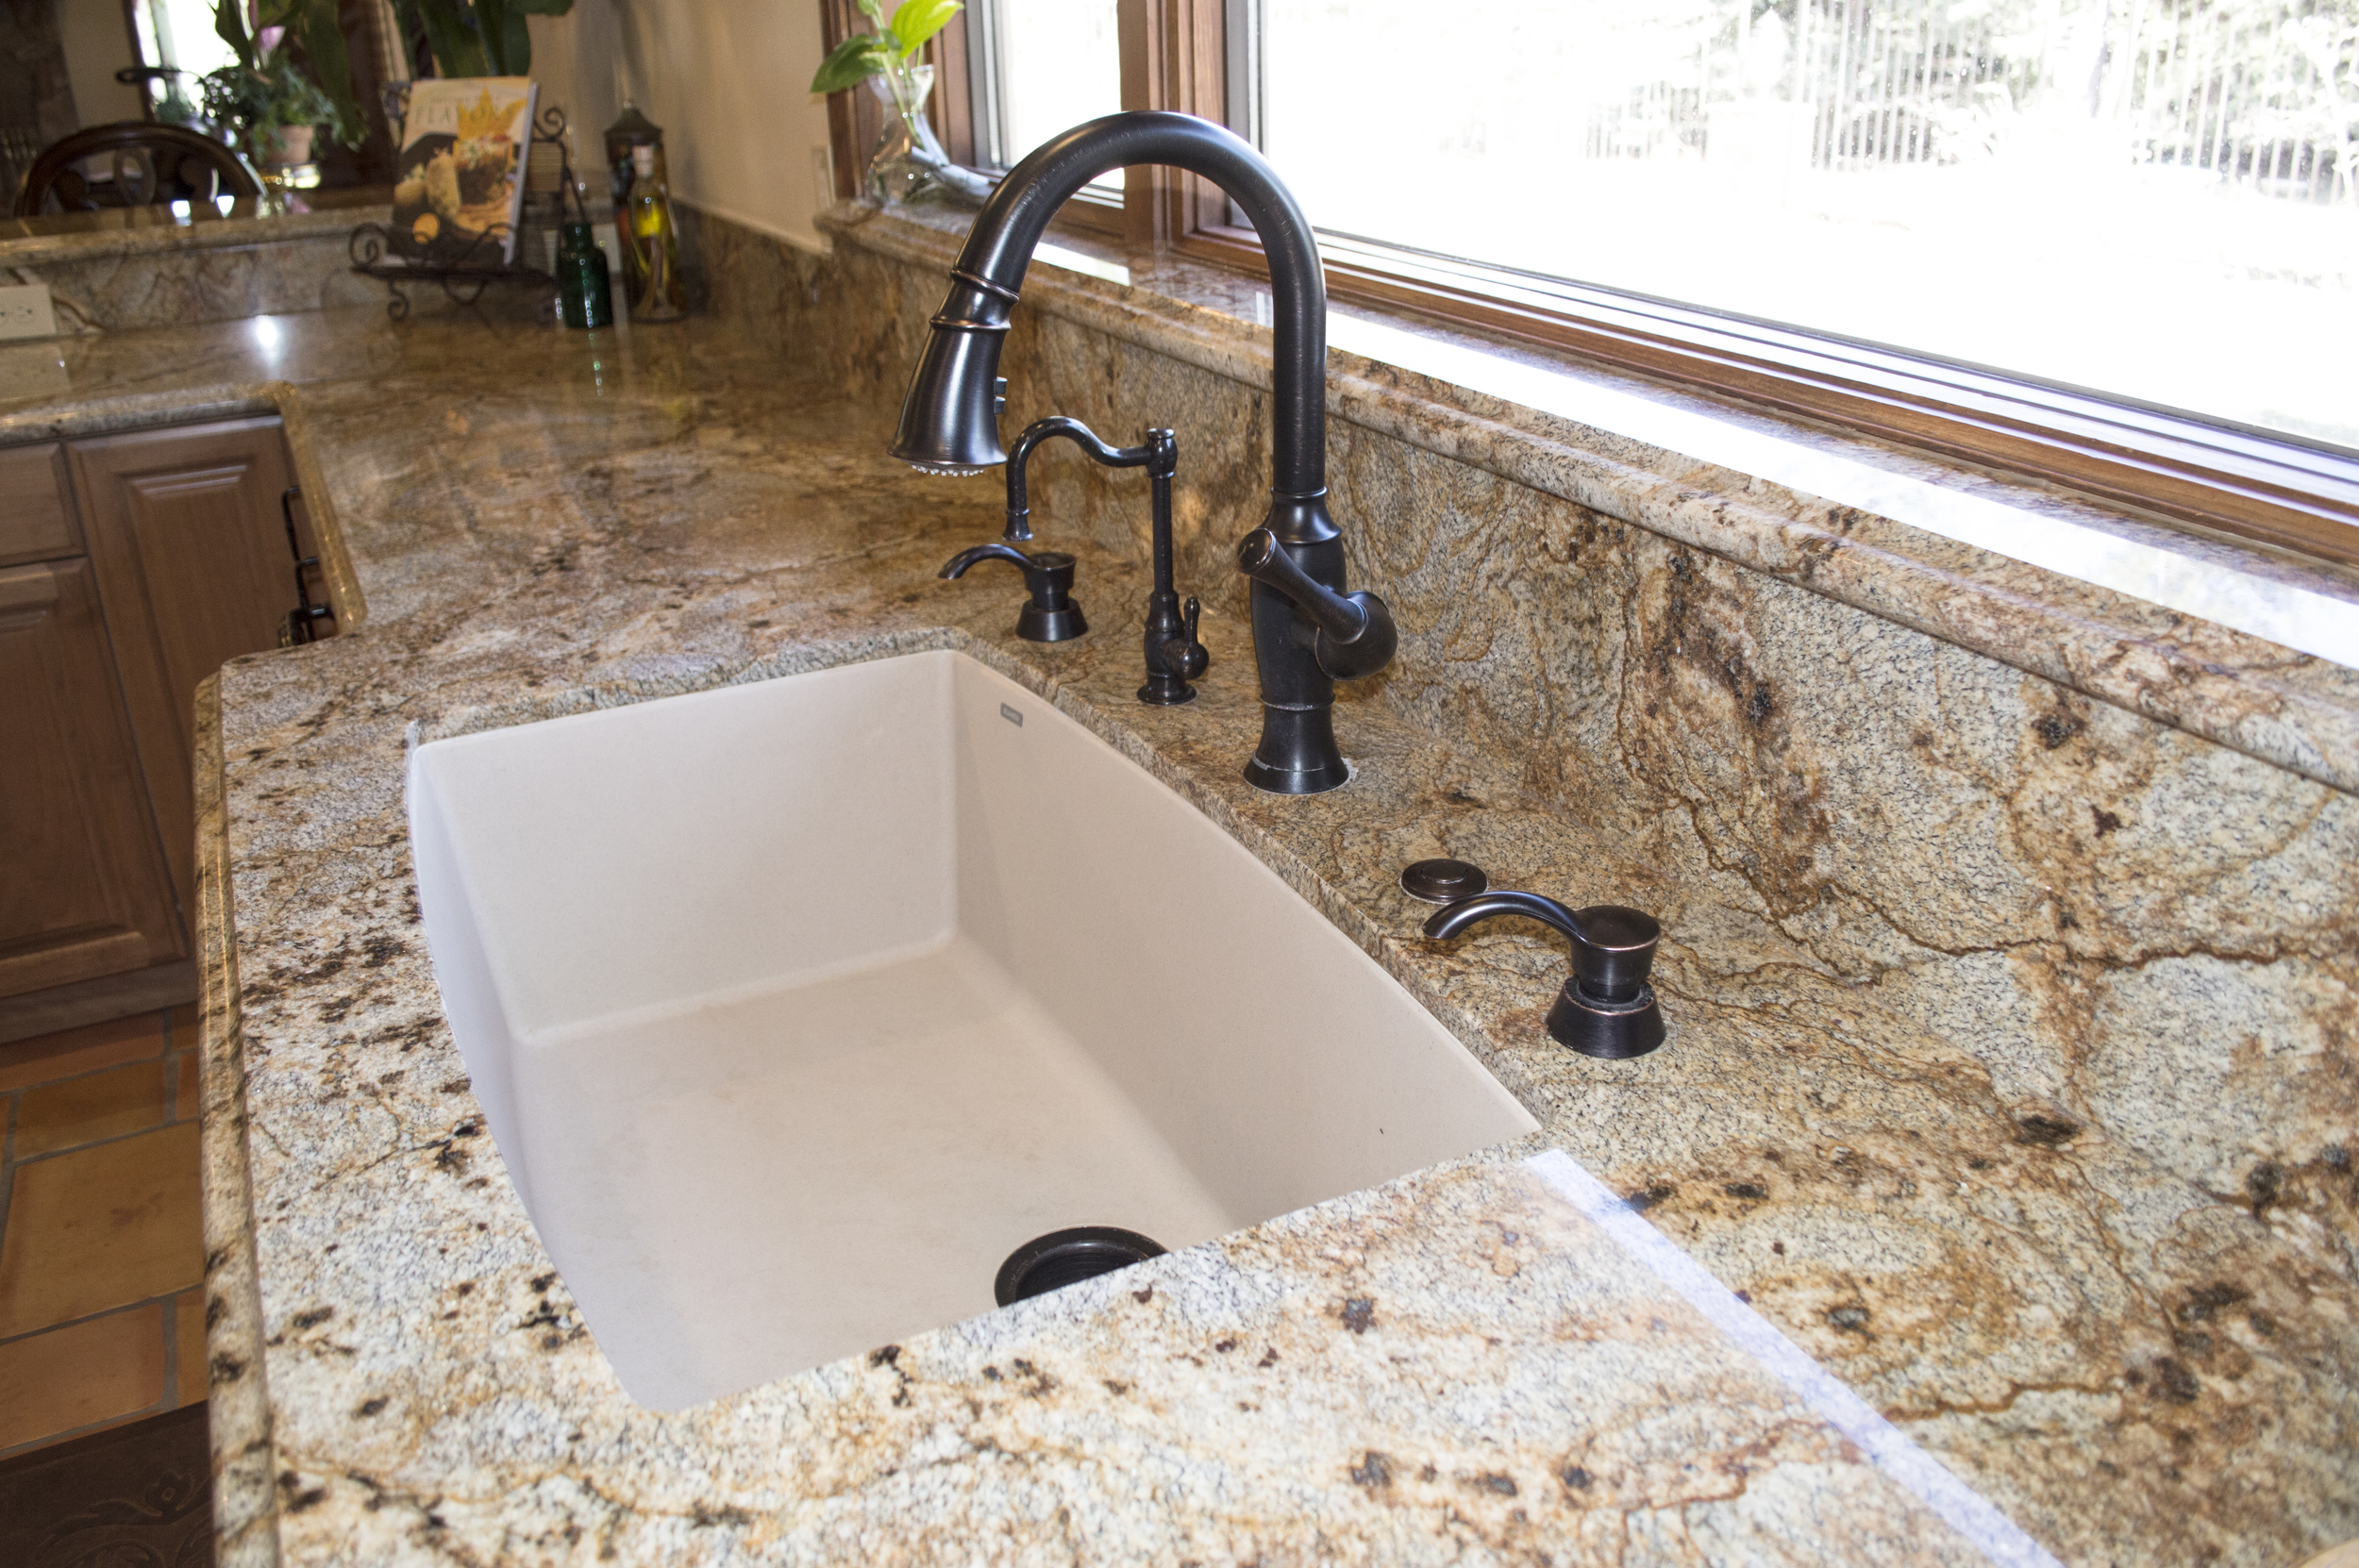 Sink in a completed custom kitchen in a residential home near Flagstaff, Arizona.